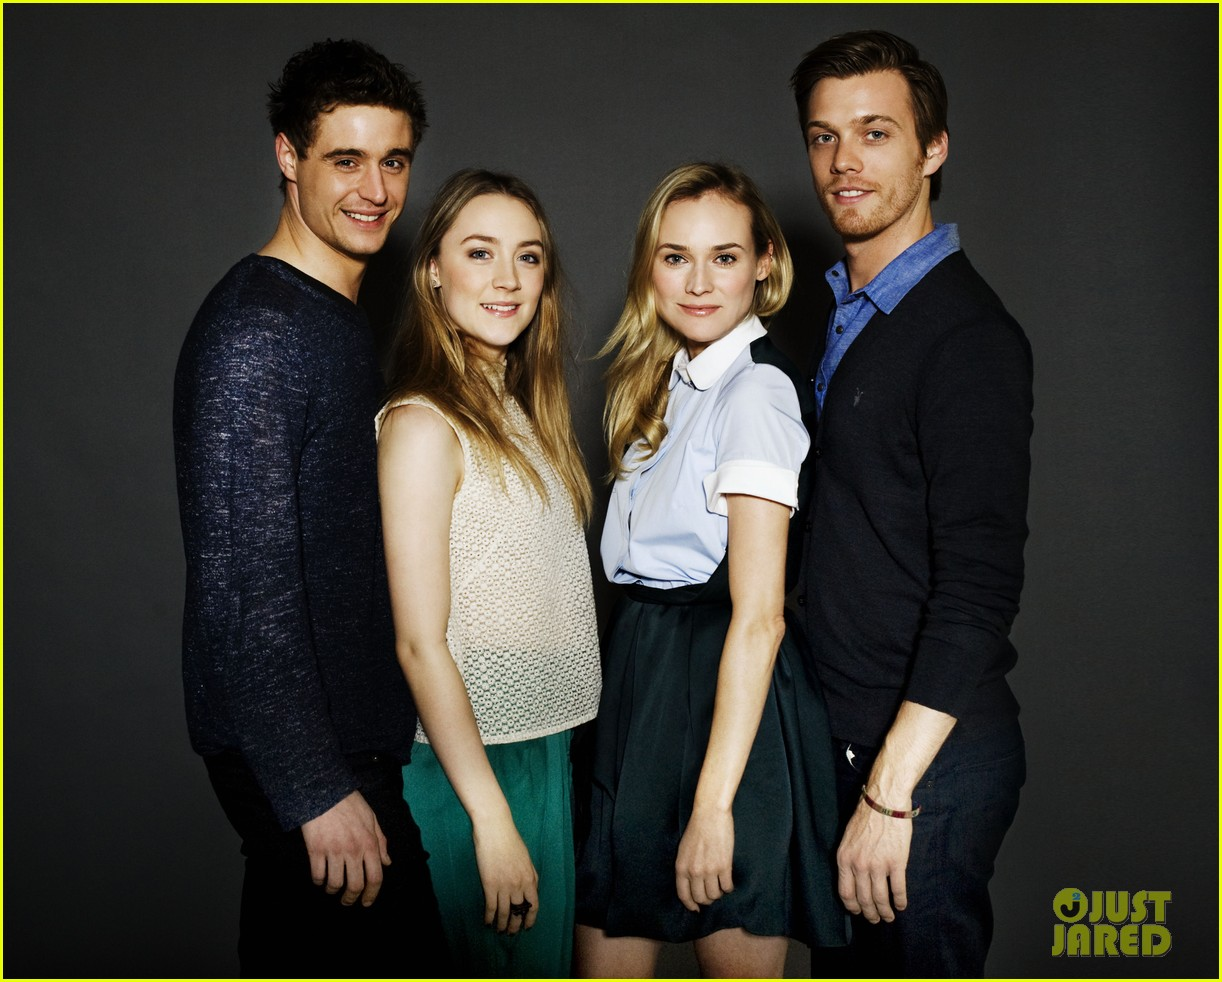 diane kruger jake abel the host cast portraits exclusive 022838583